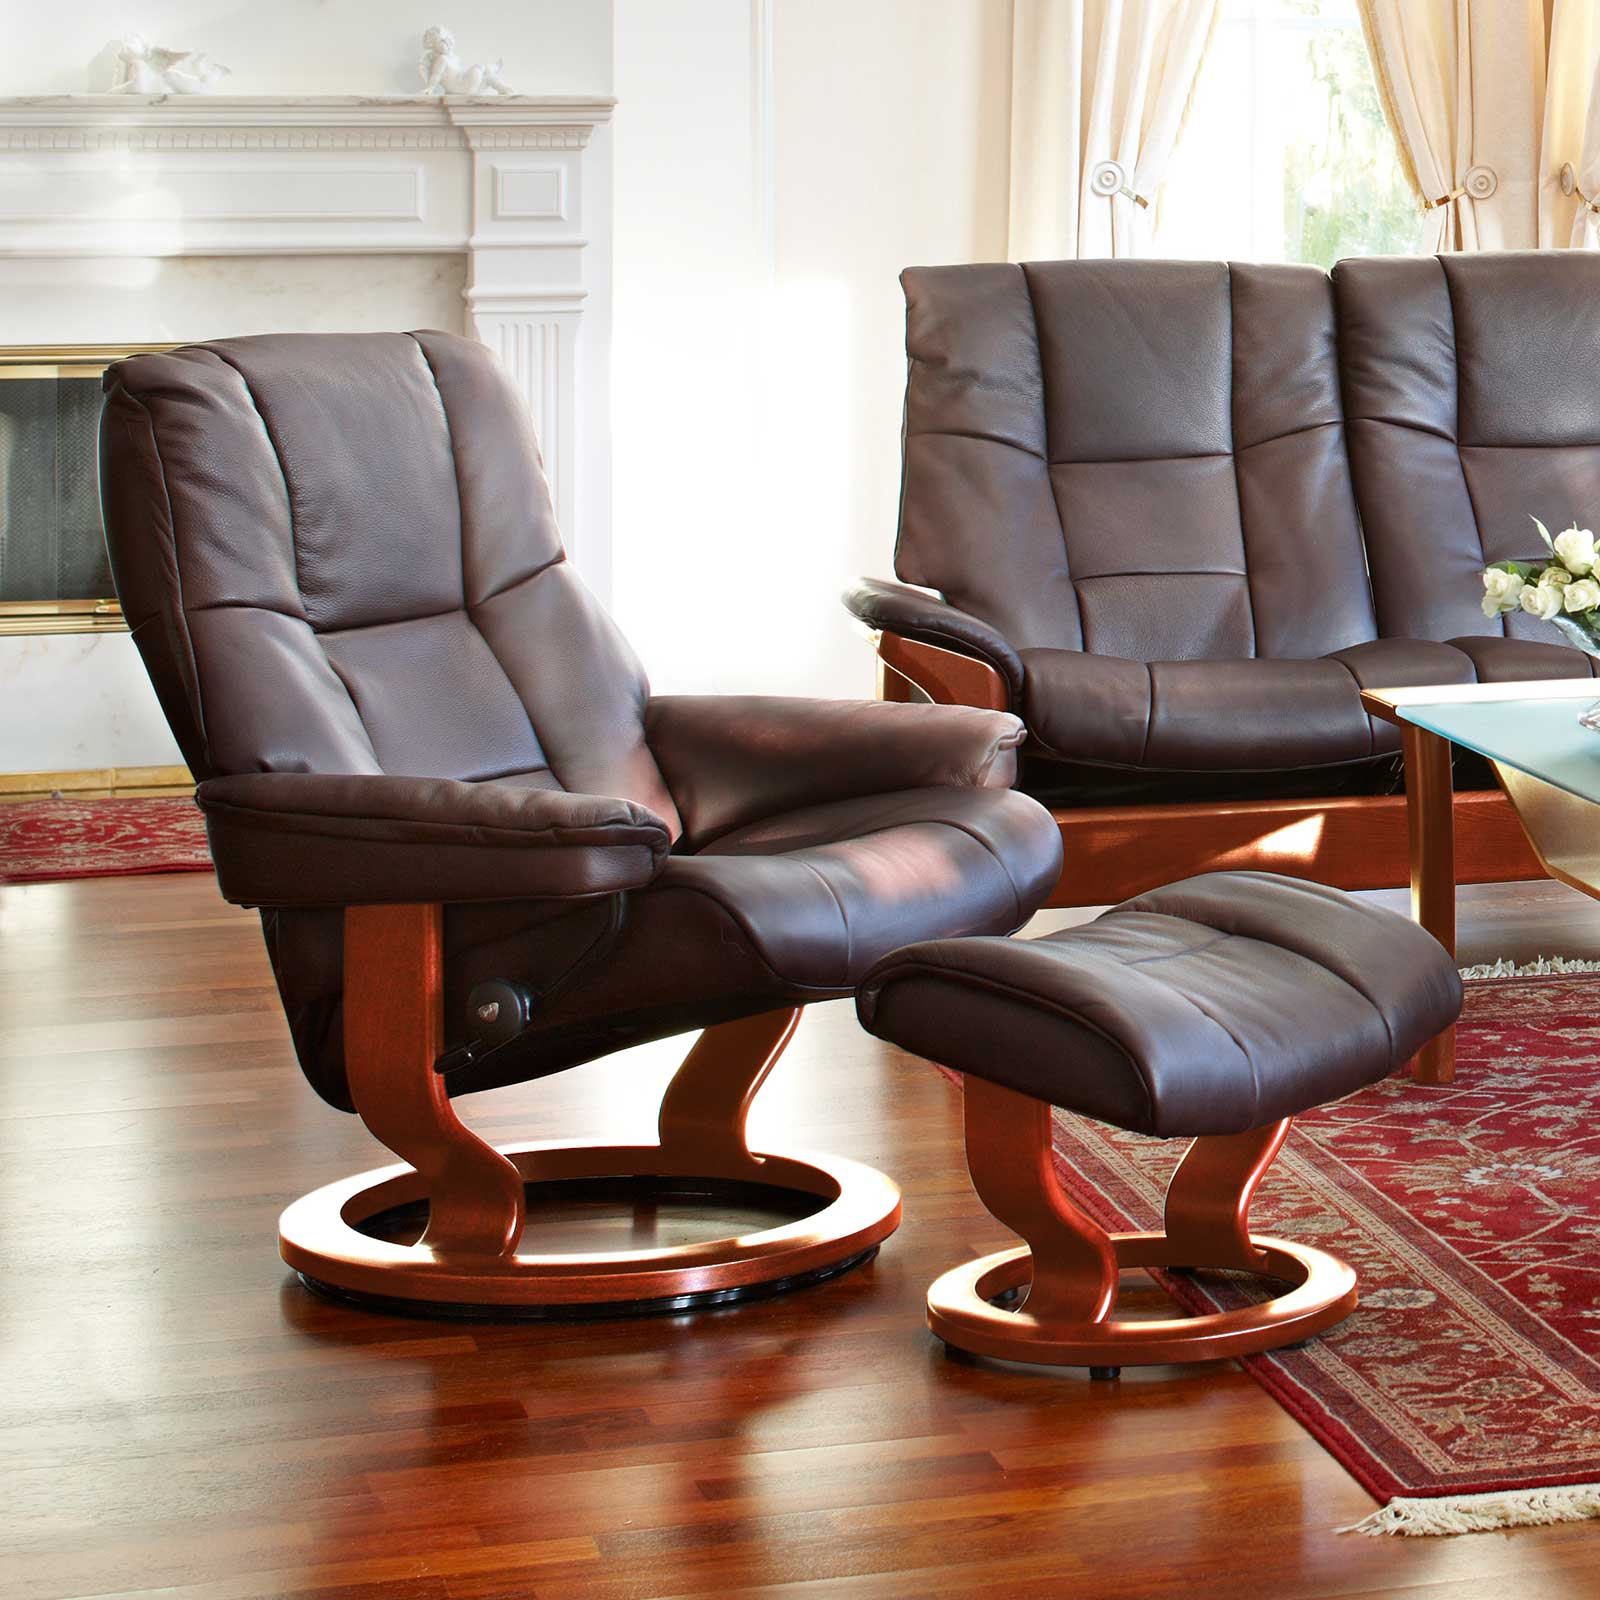 stressless mayfair cori brown classic braun mit hocker stressless. Black Bedroom Furniture Sets. Home Design Ideas